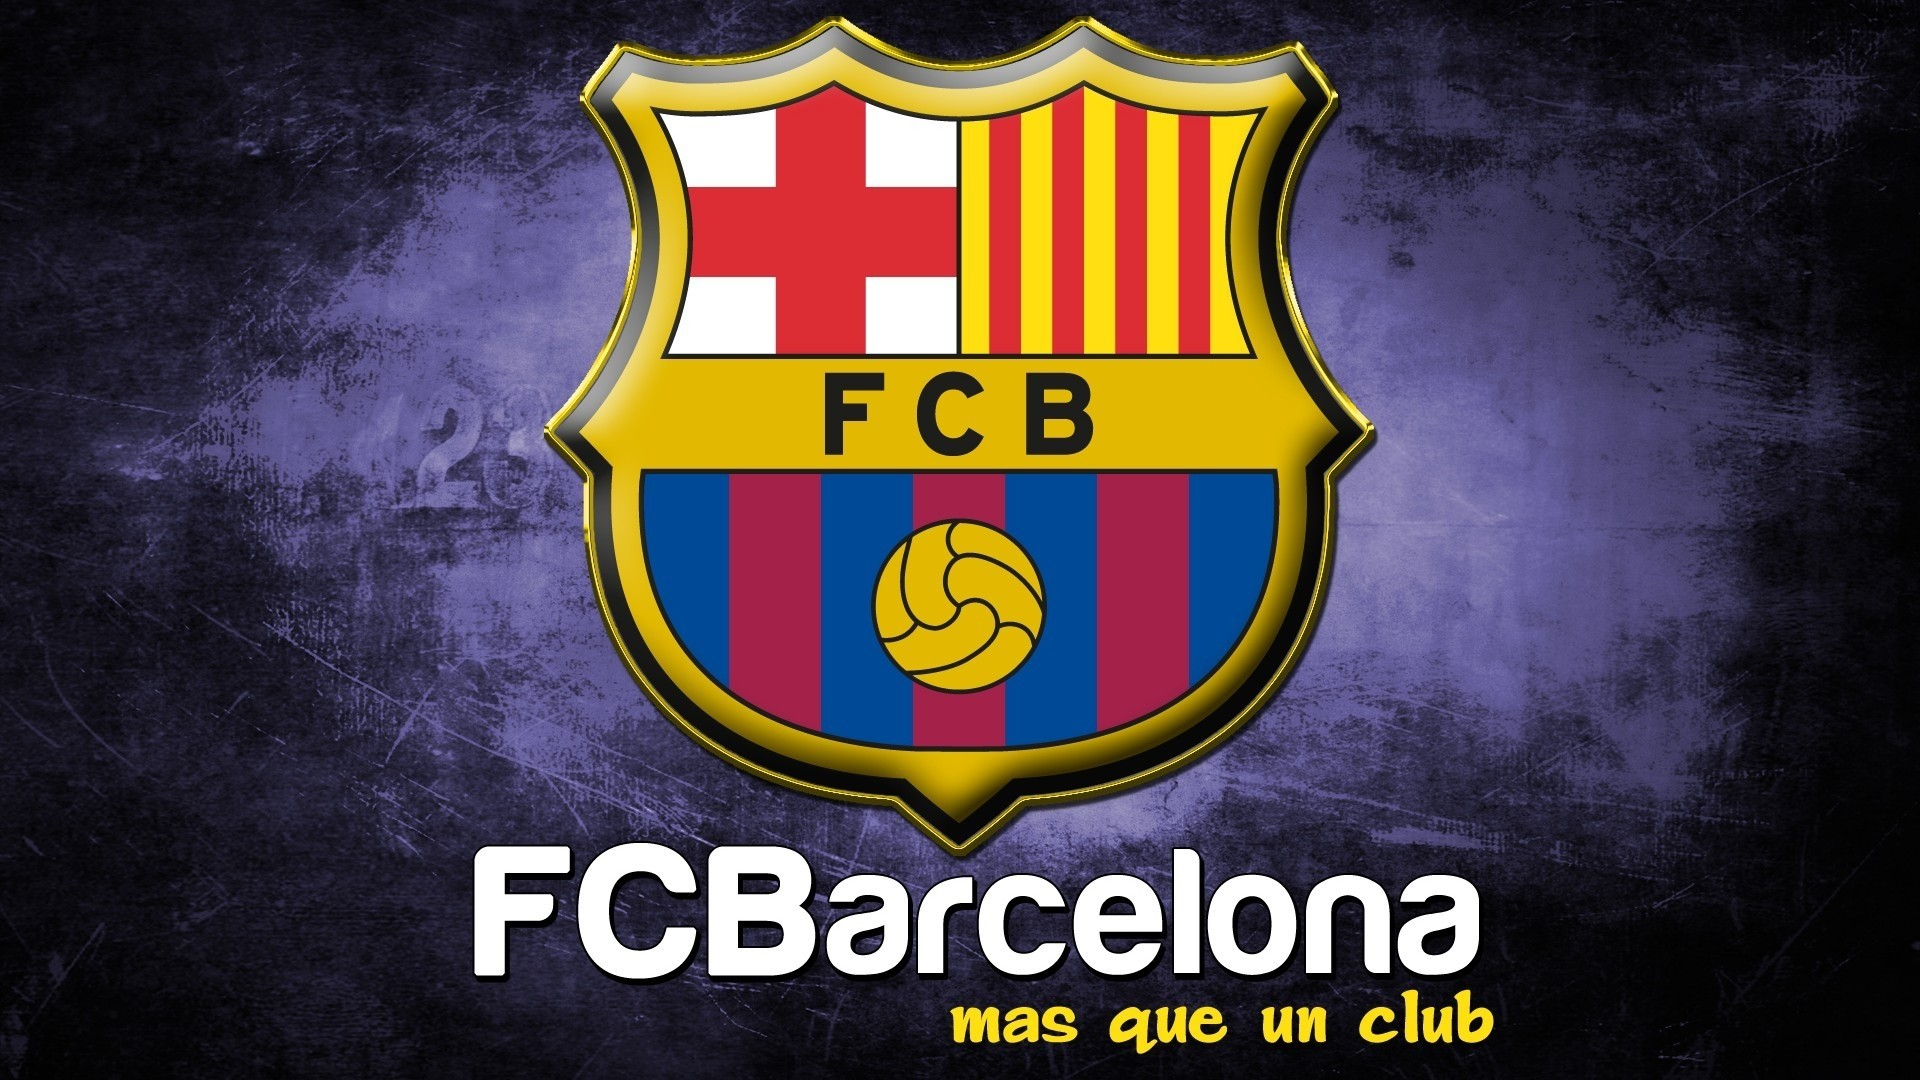 Fc Barcelona Logo Wallpaper Download Pixelstalk Net